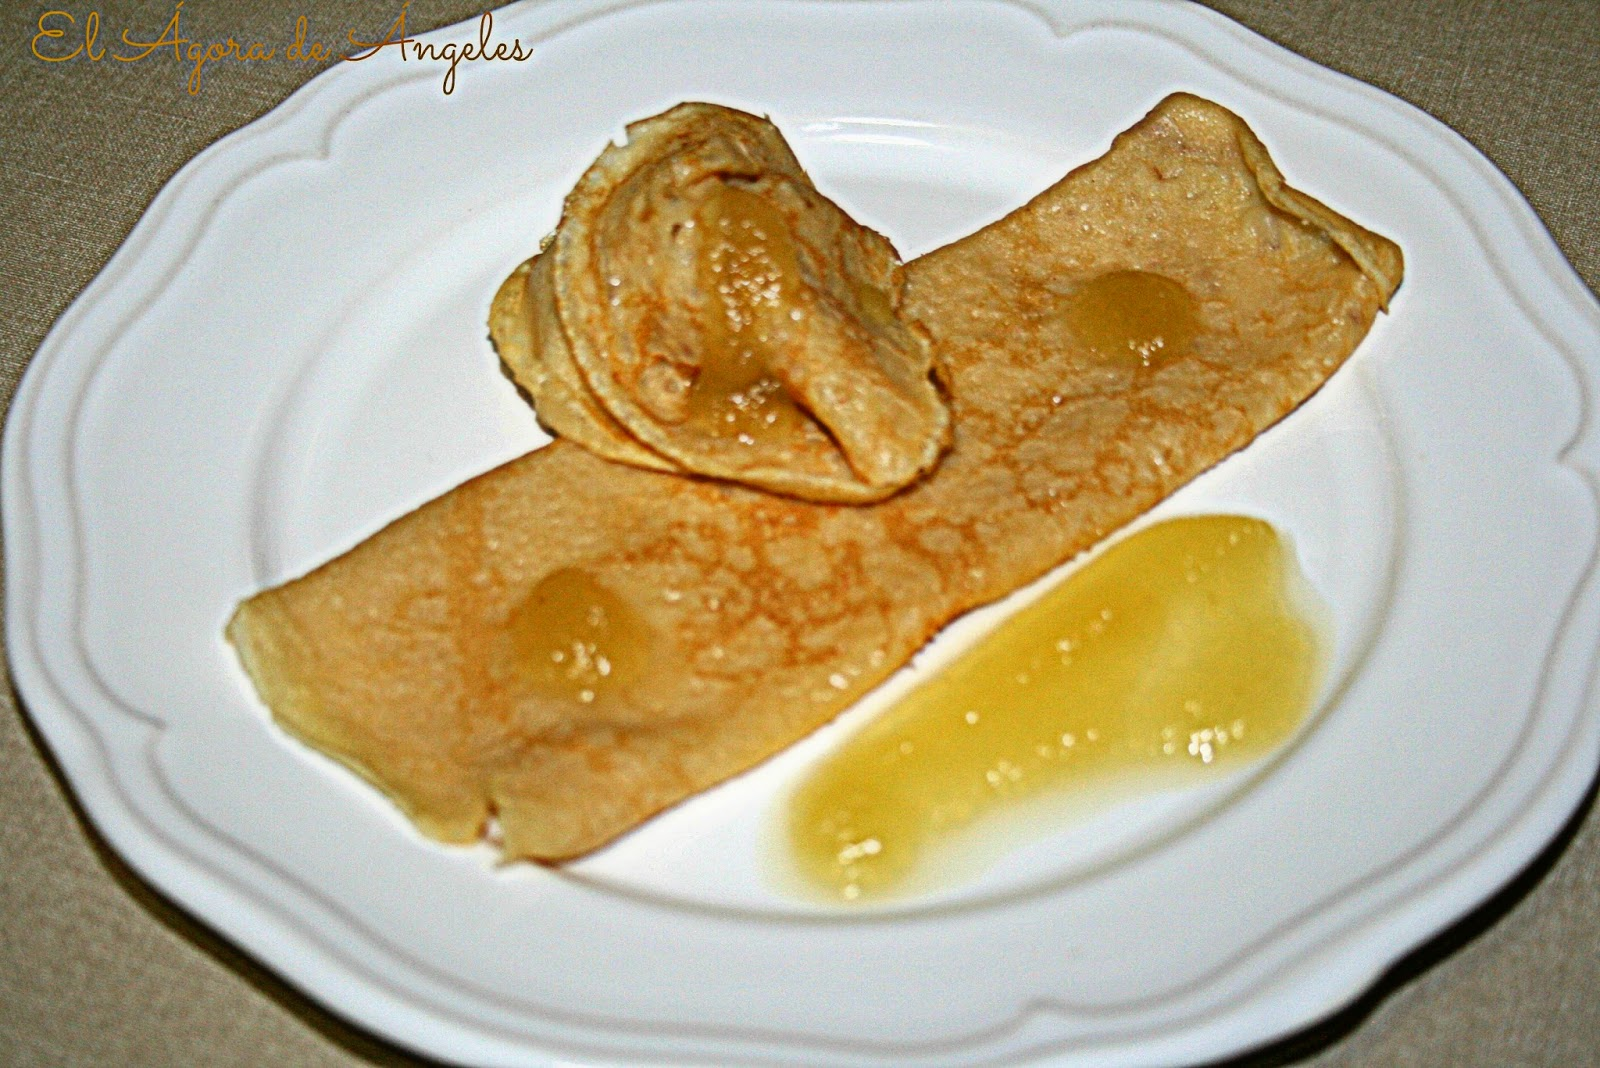 frixuelos, creps